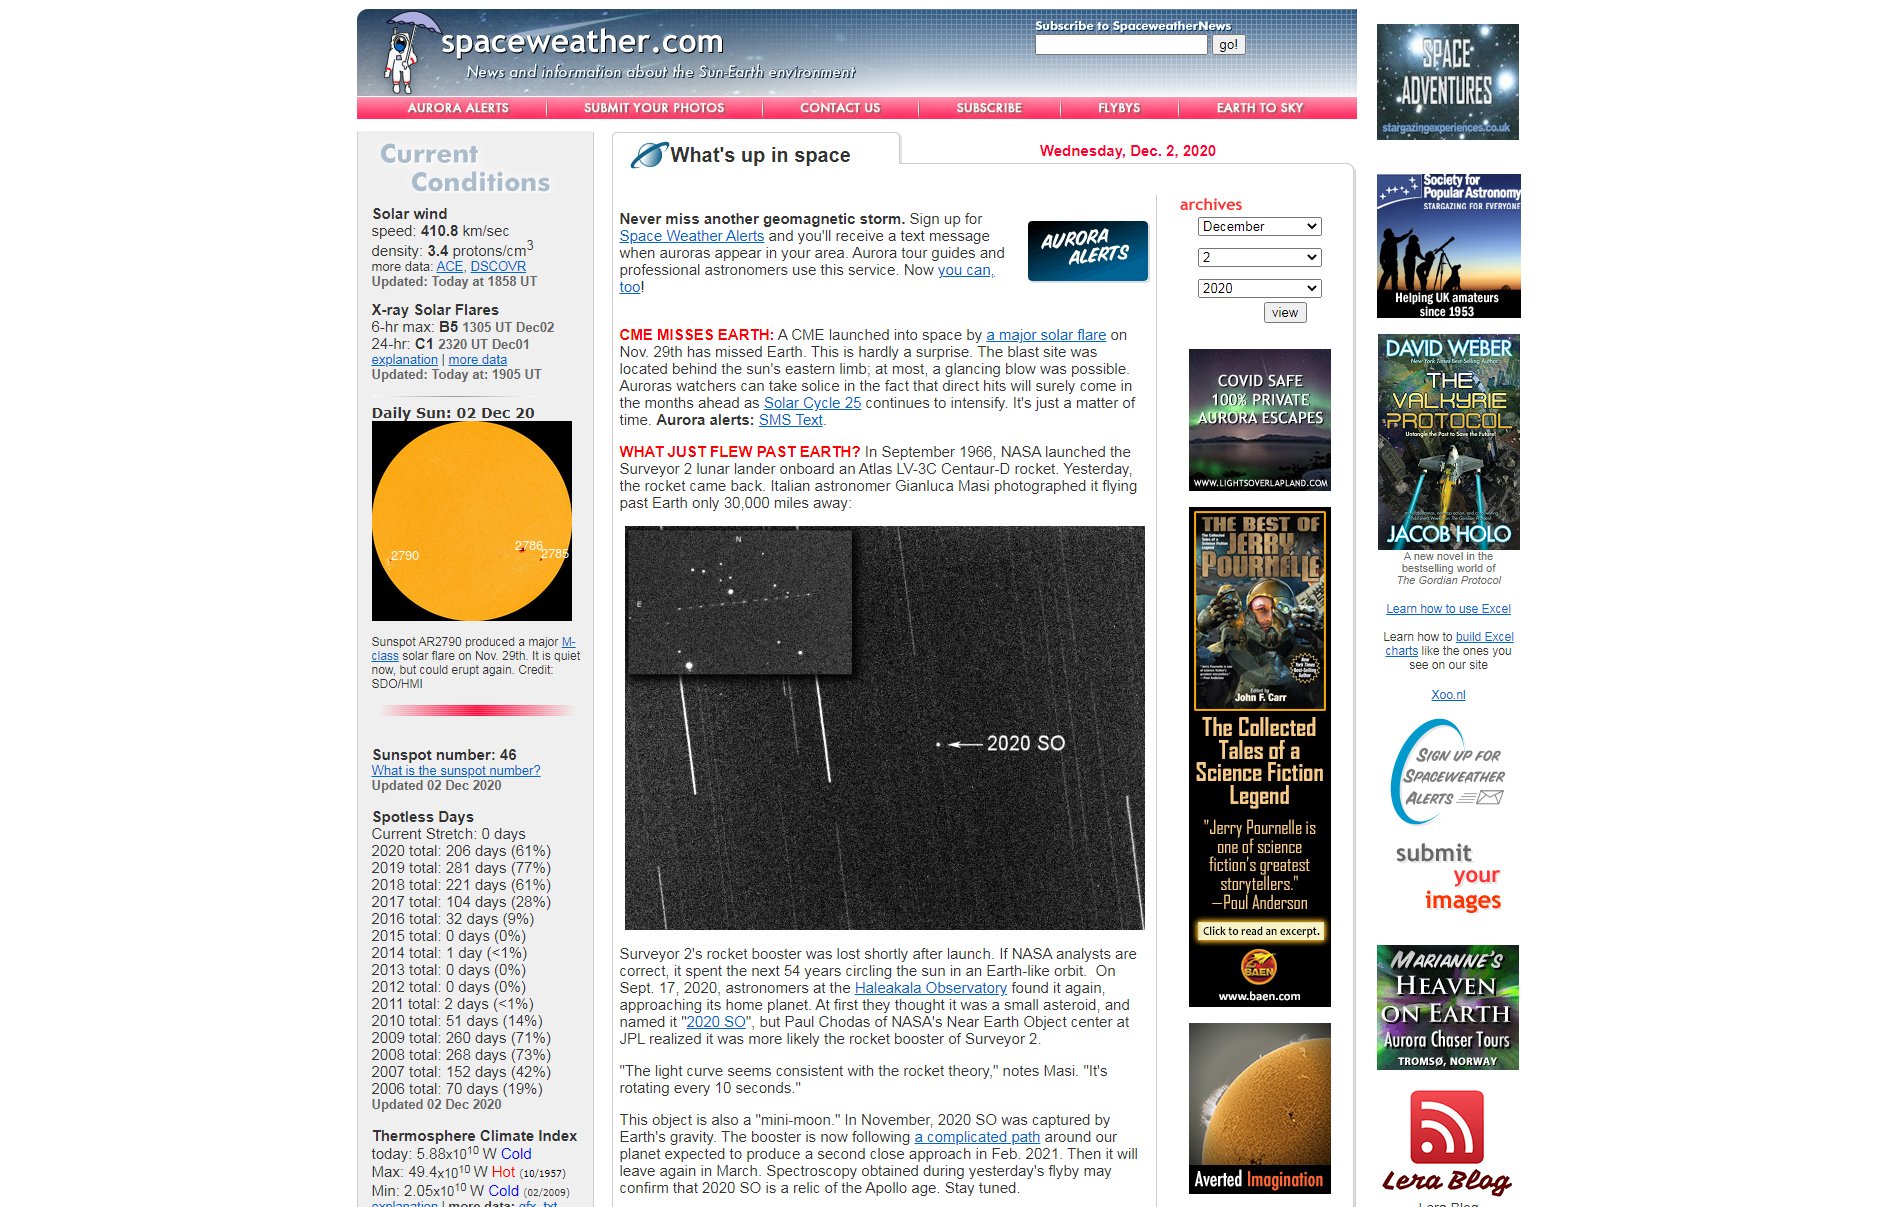 Spaceweather.com shared our images and finding.